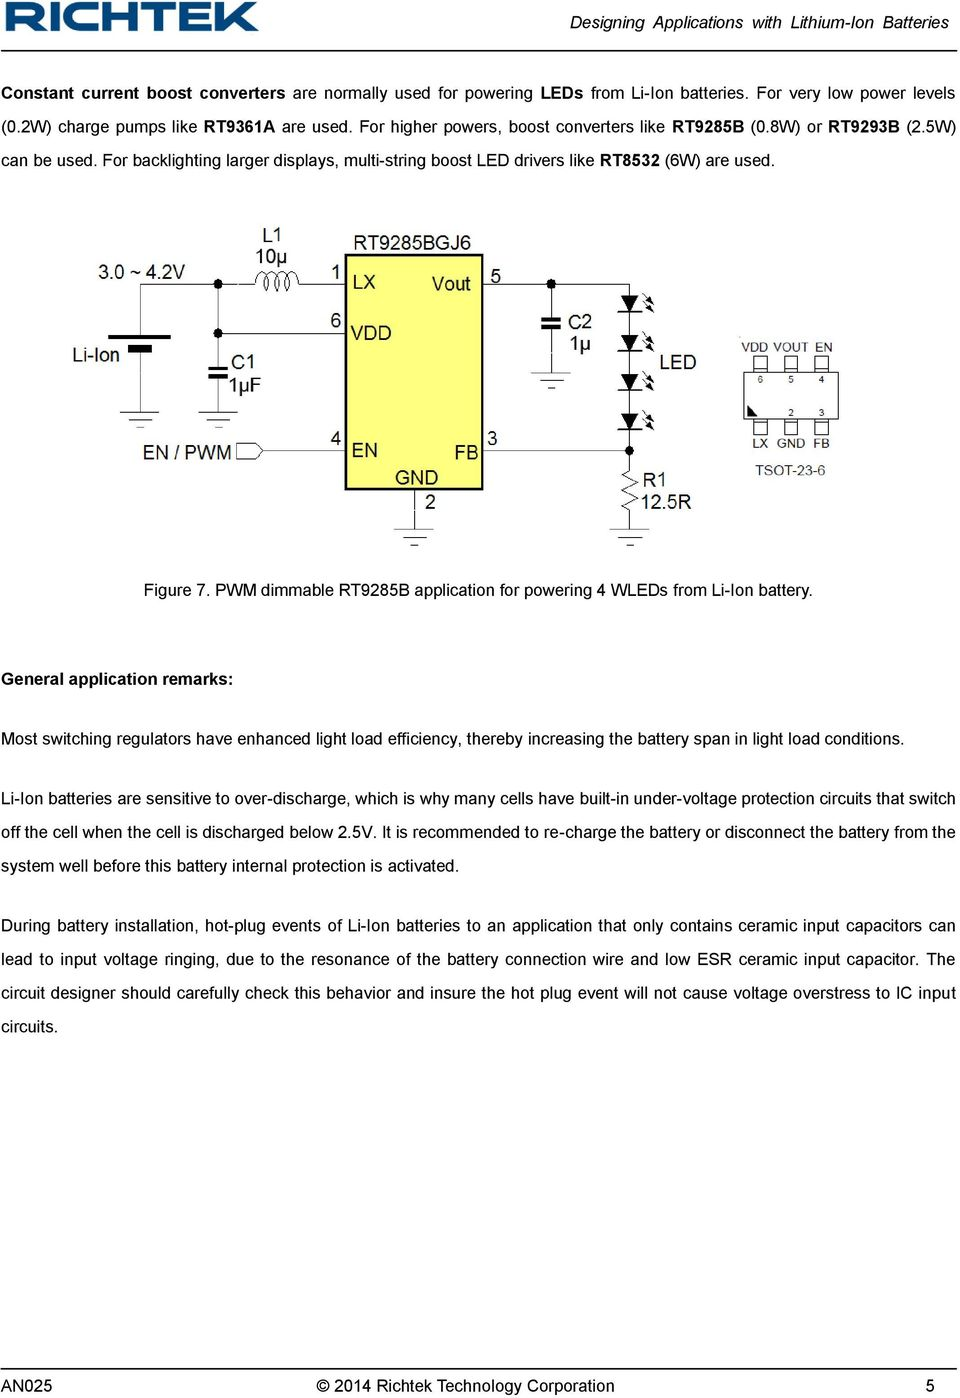 Designing Applications With Lithium Ion Batteries Pdf How To Build Solar Lamp Using Pr4403 Pwm Dimmable Rt9285b Application For Powering 4 Wleds From Li Battery